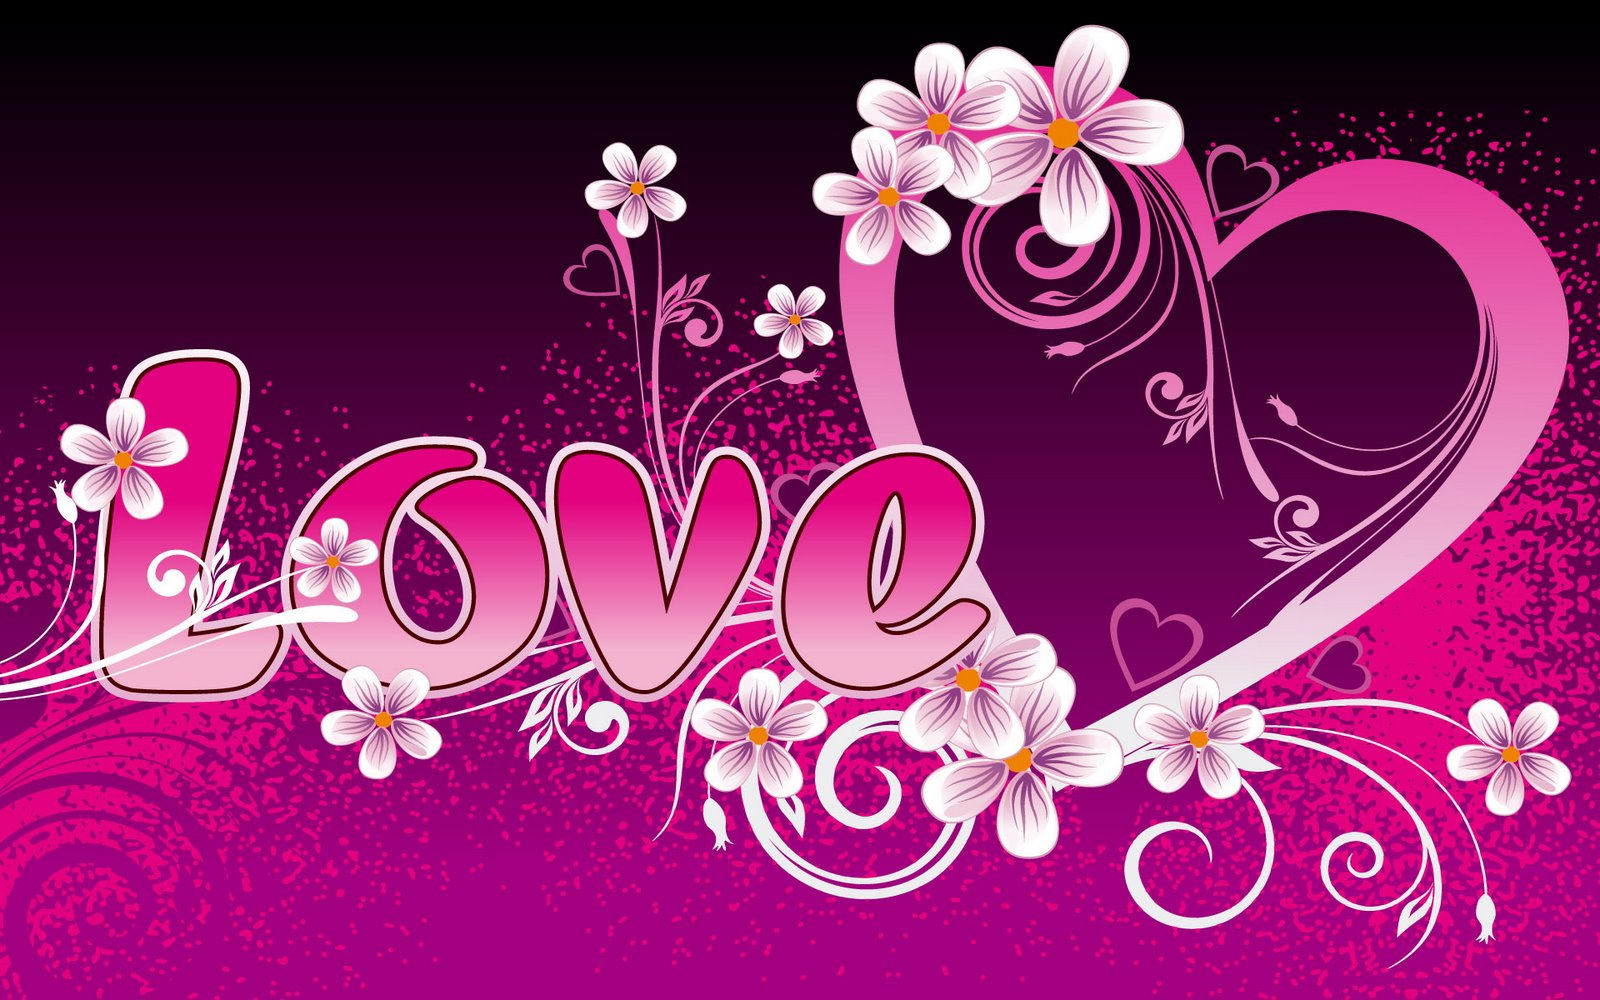 Love Wallpapers Blogspot : Pictures World: Beautiful Love wallpaper